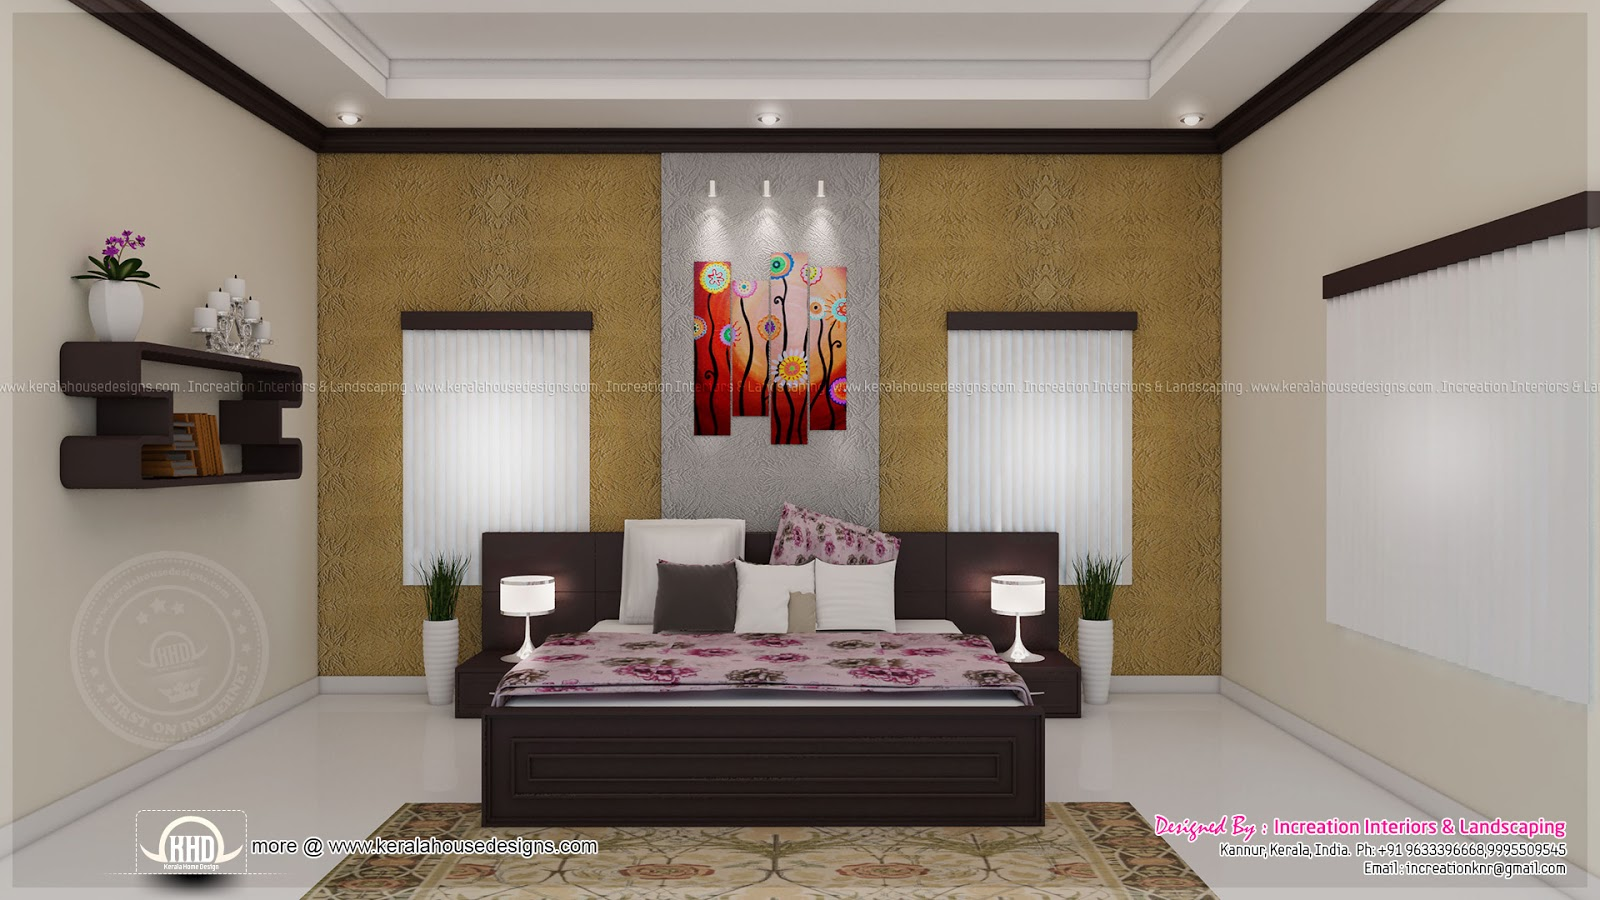 House interior ideas in 3d rendering kerala home design for Home design bedroom ideas